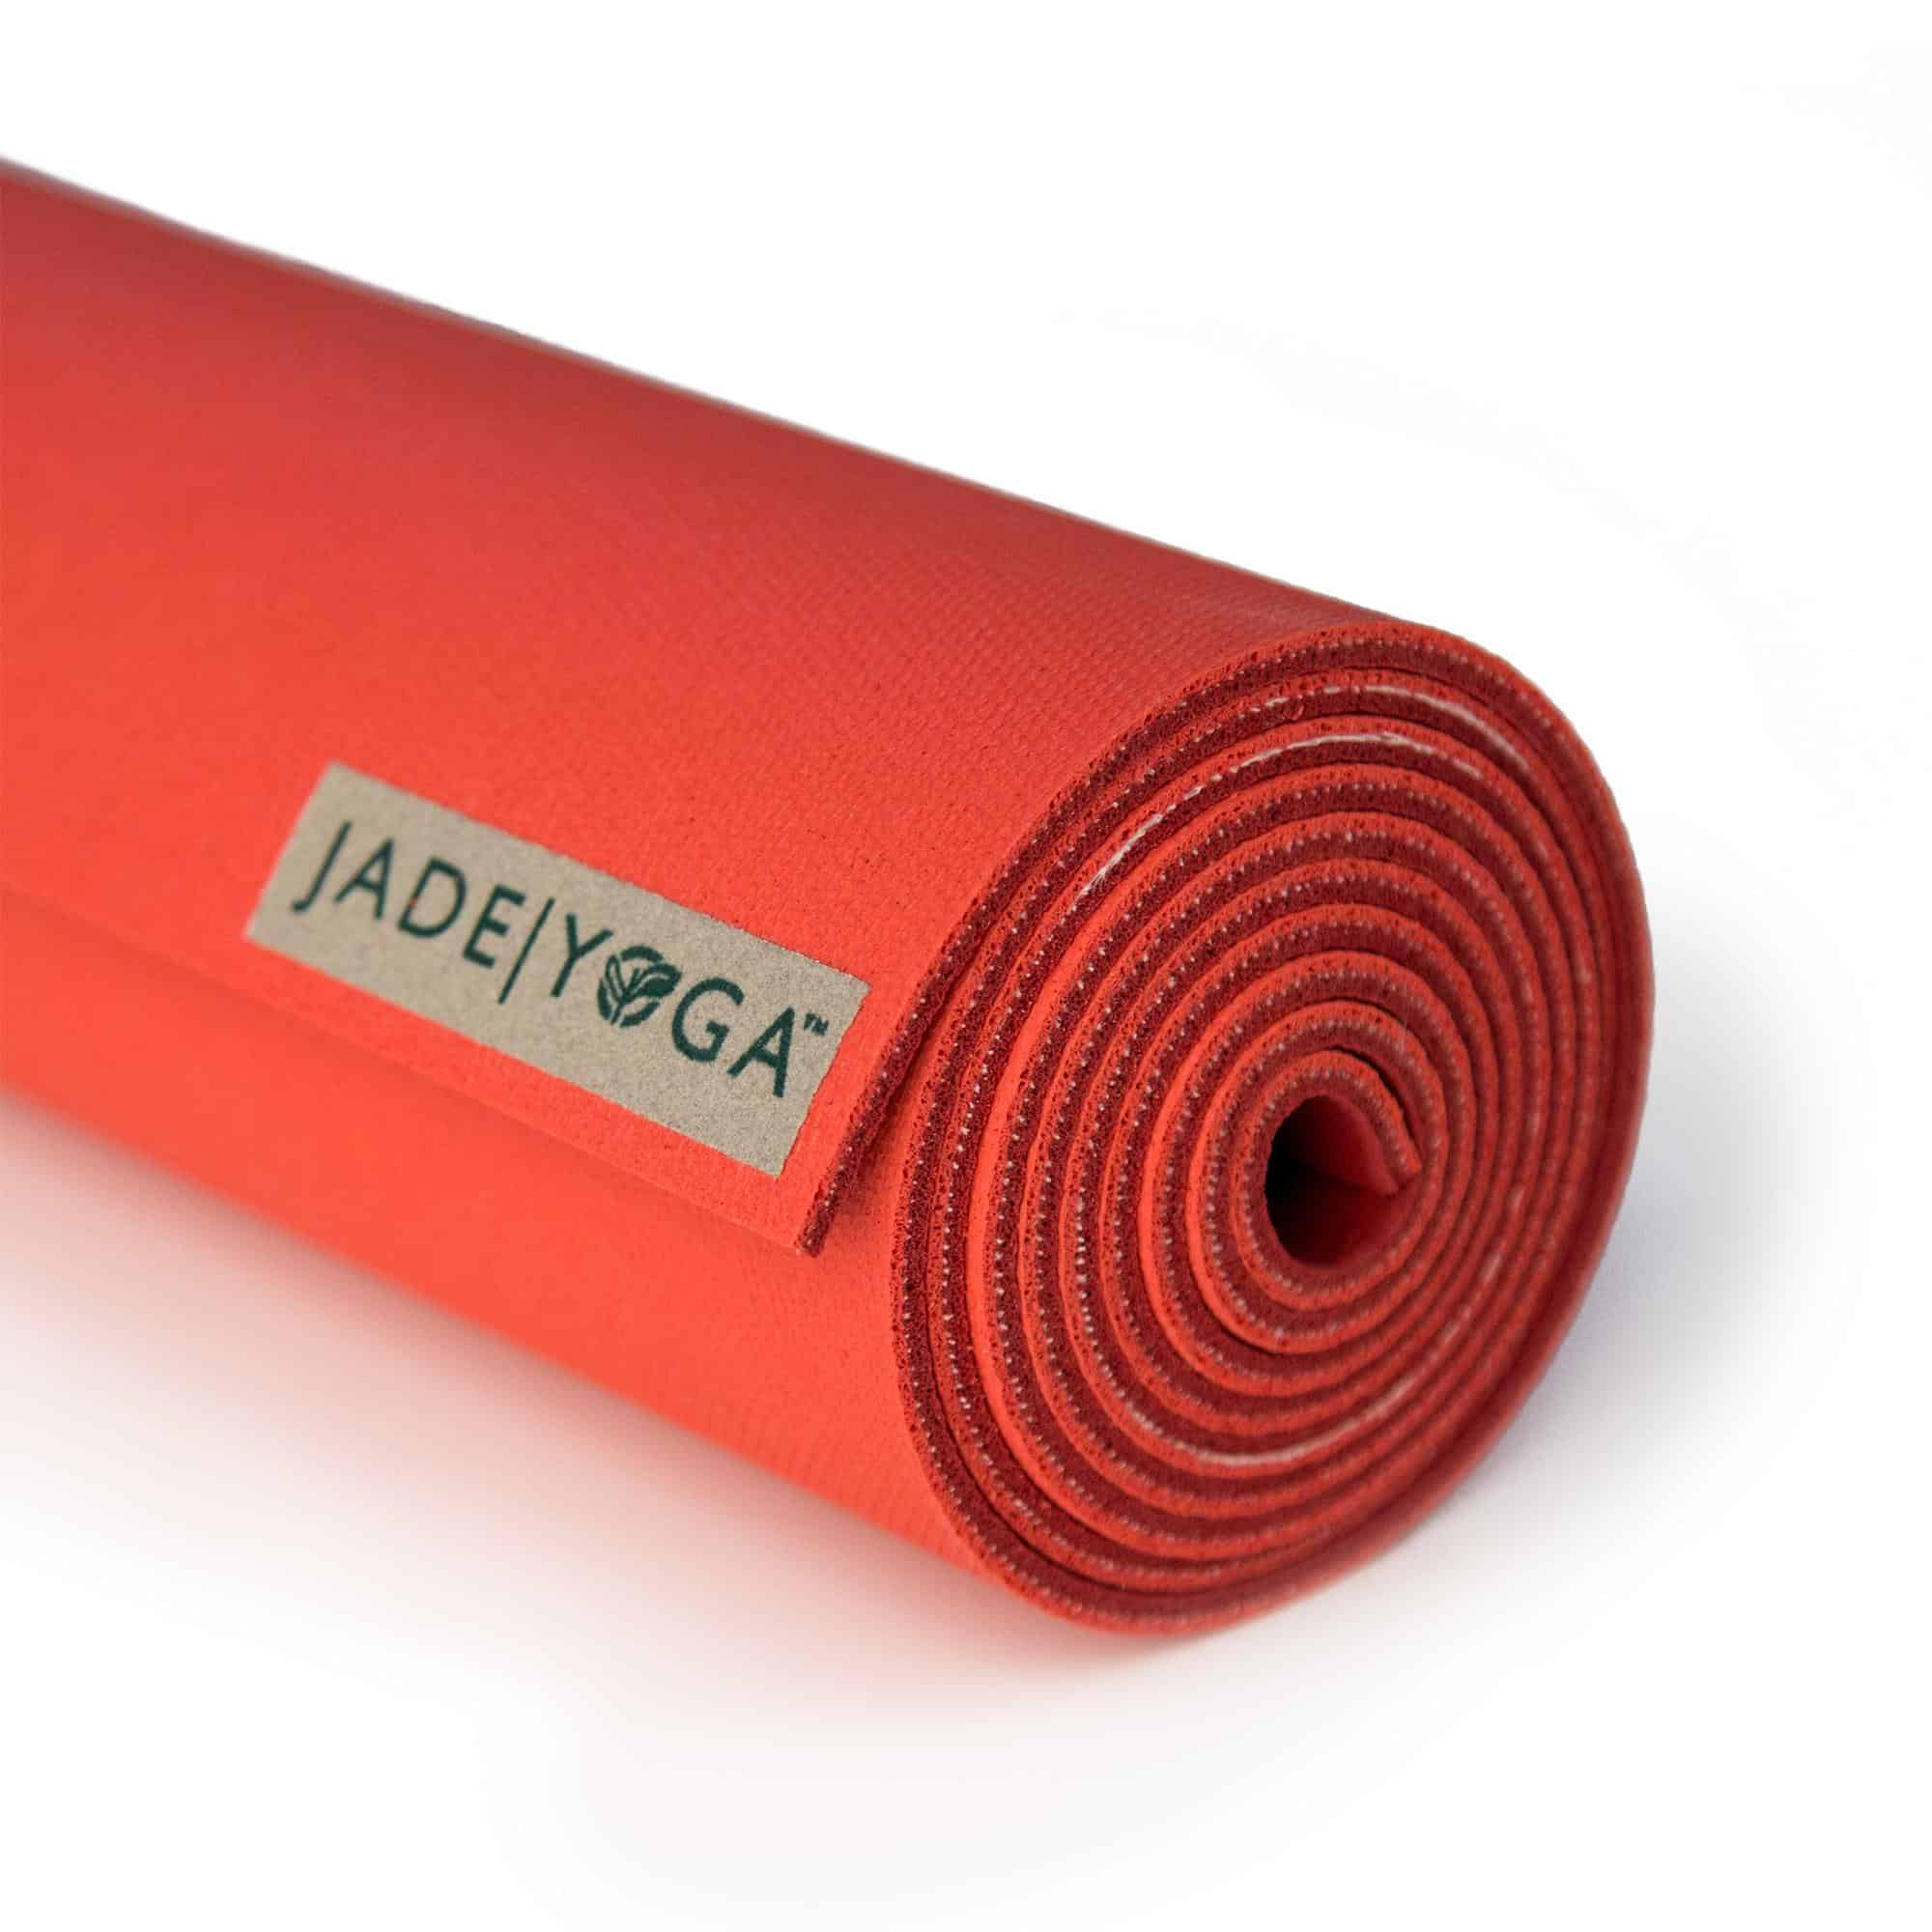 exercise mat singapore